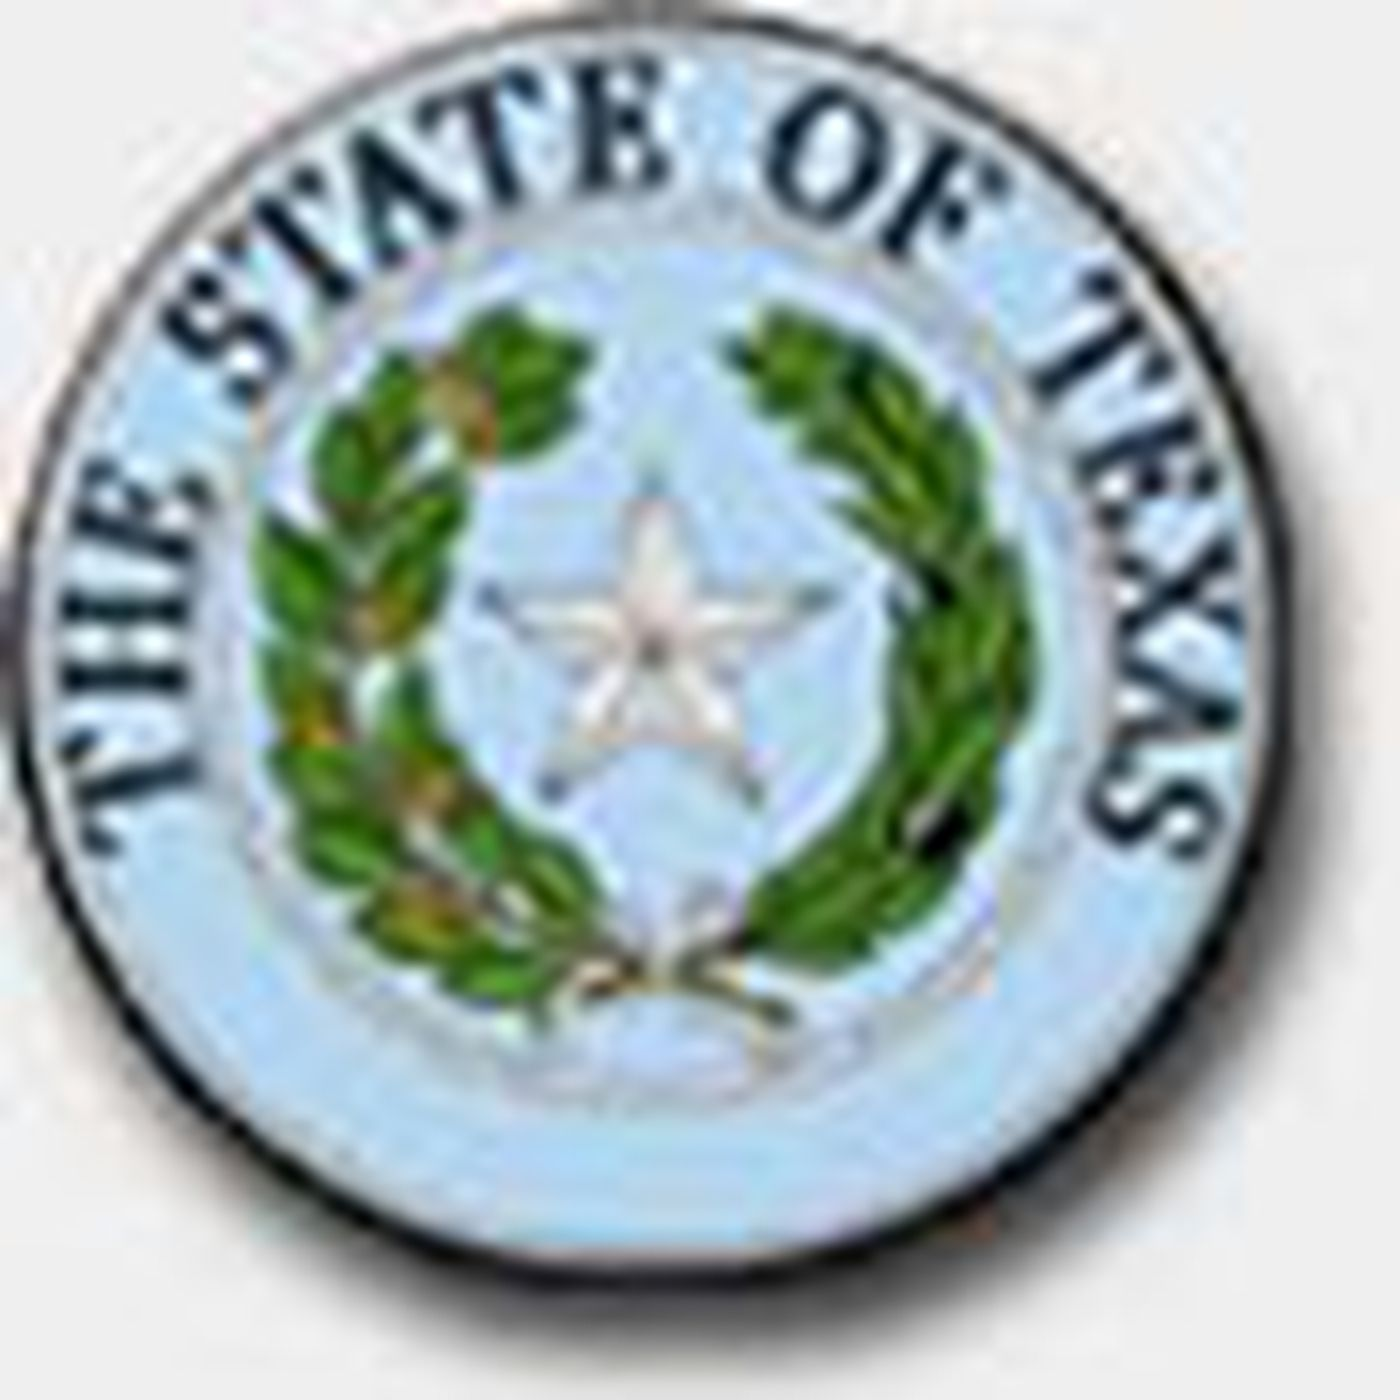 TDCJ Serious Incident Review